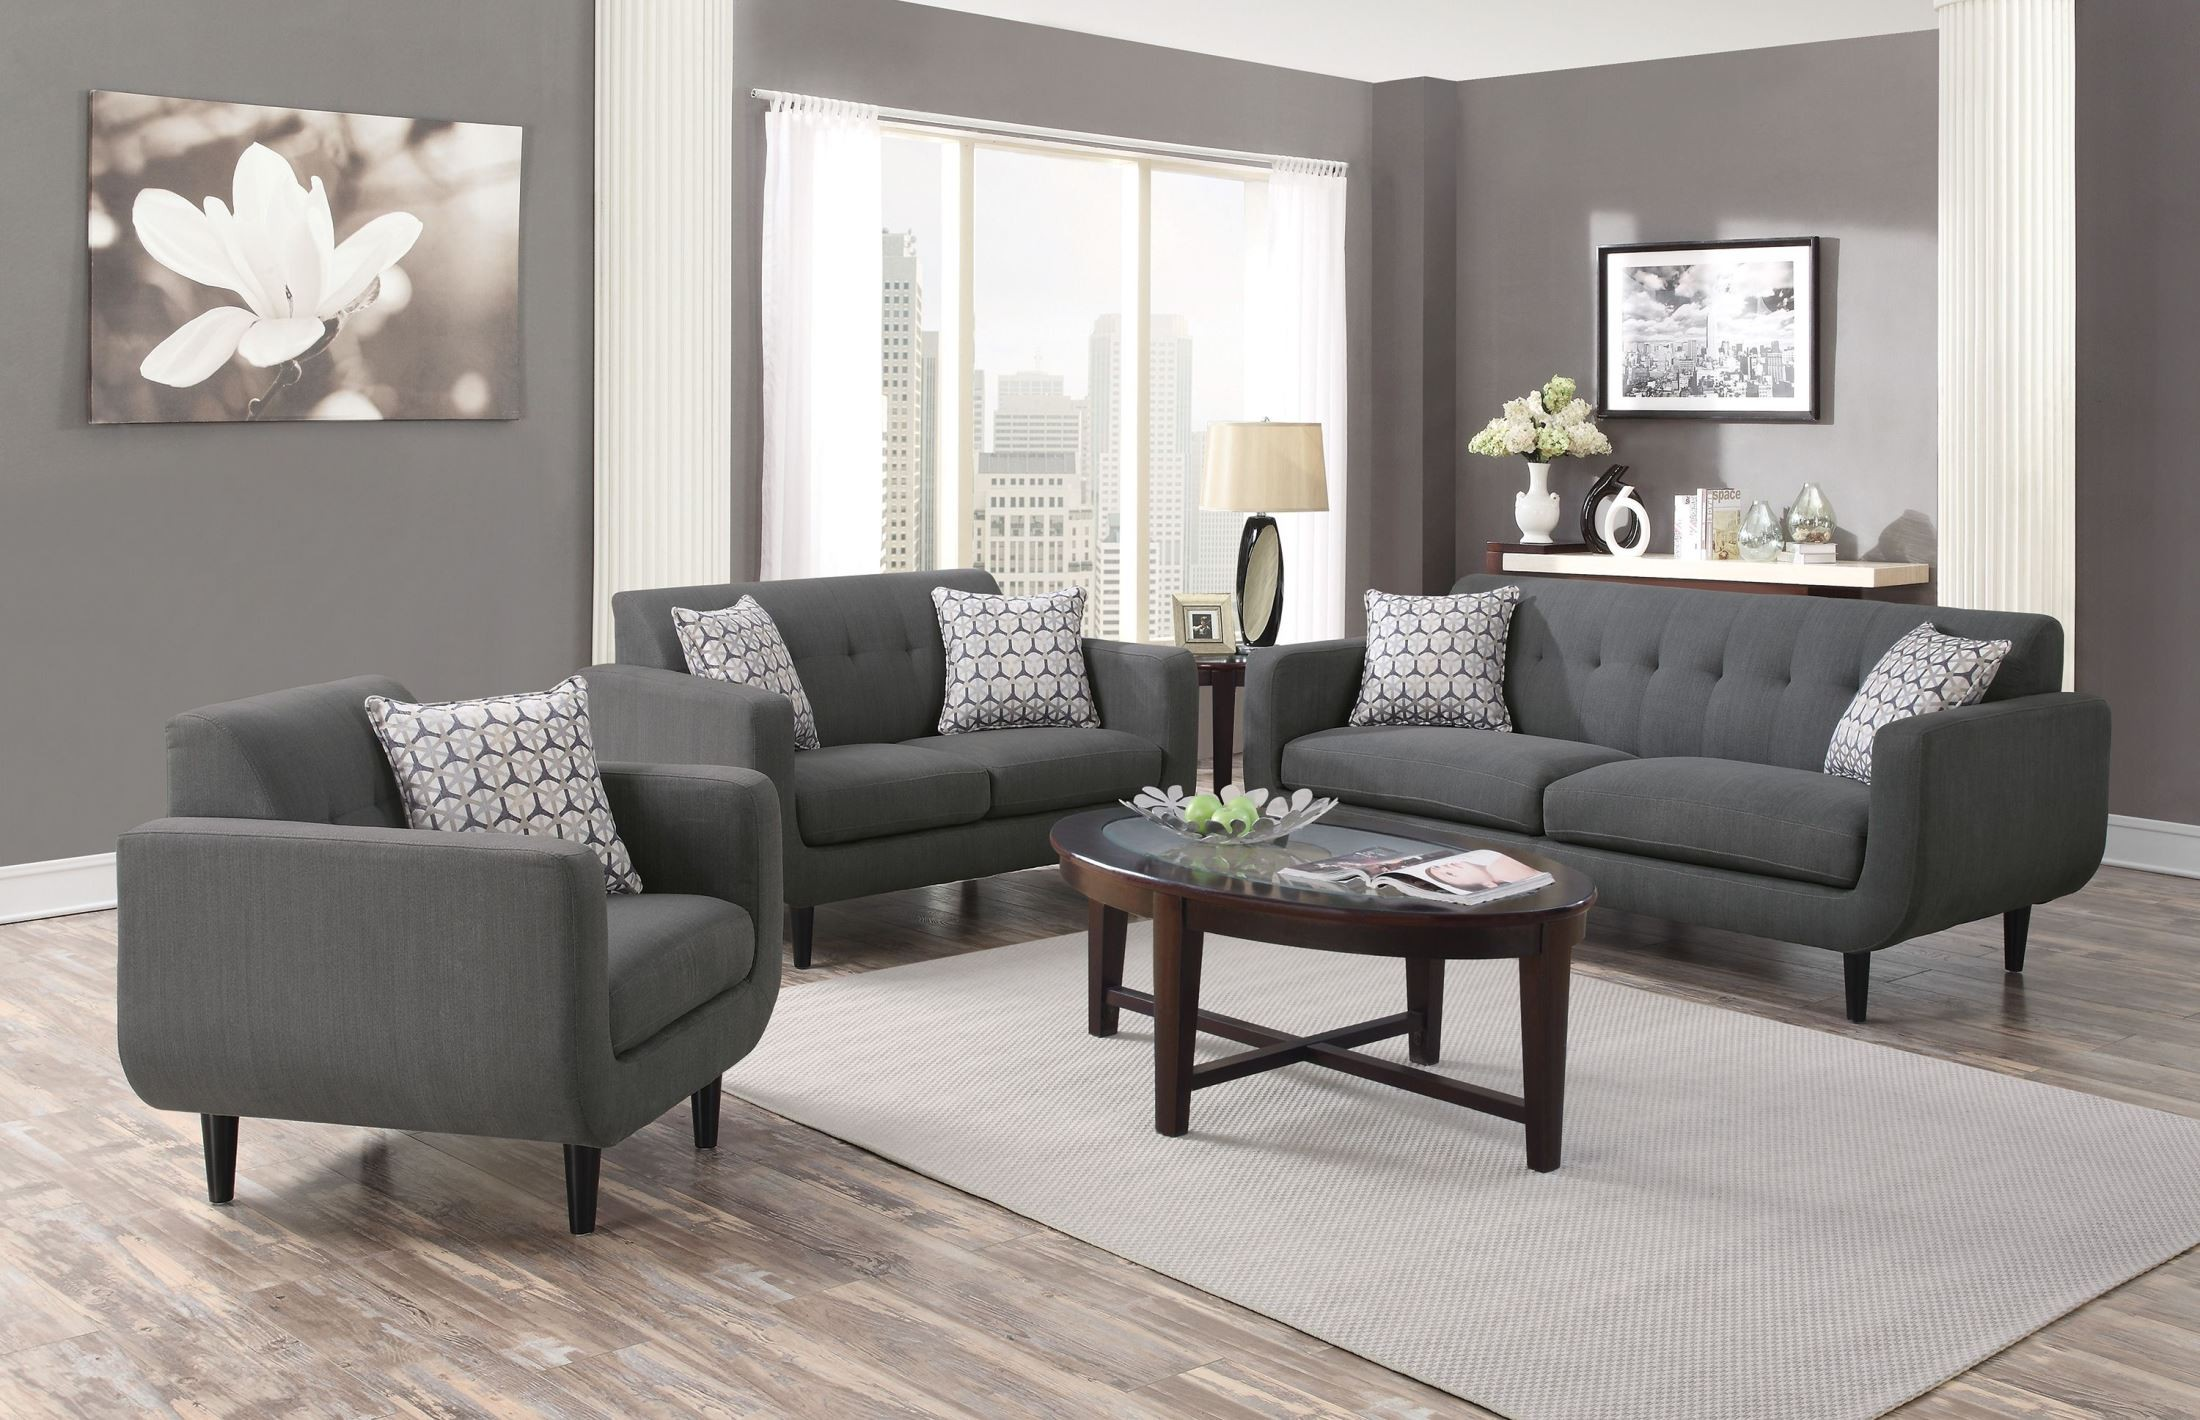 Stansall grey living room set 505201 coaster for Home living room furniture